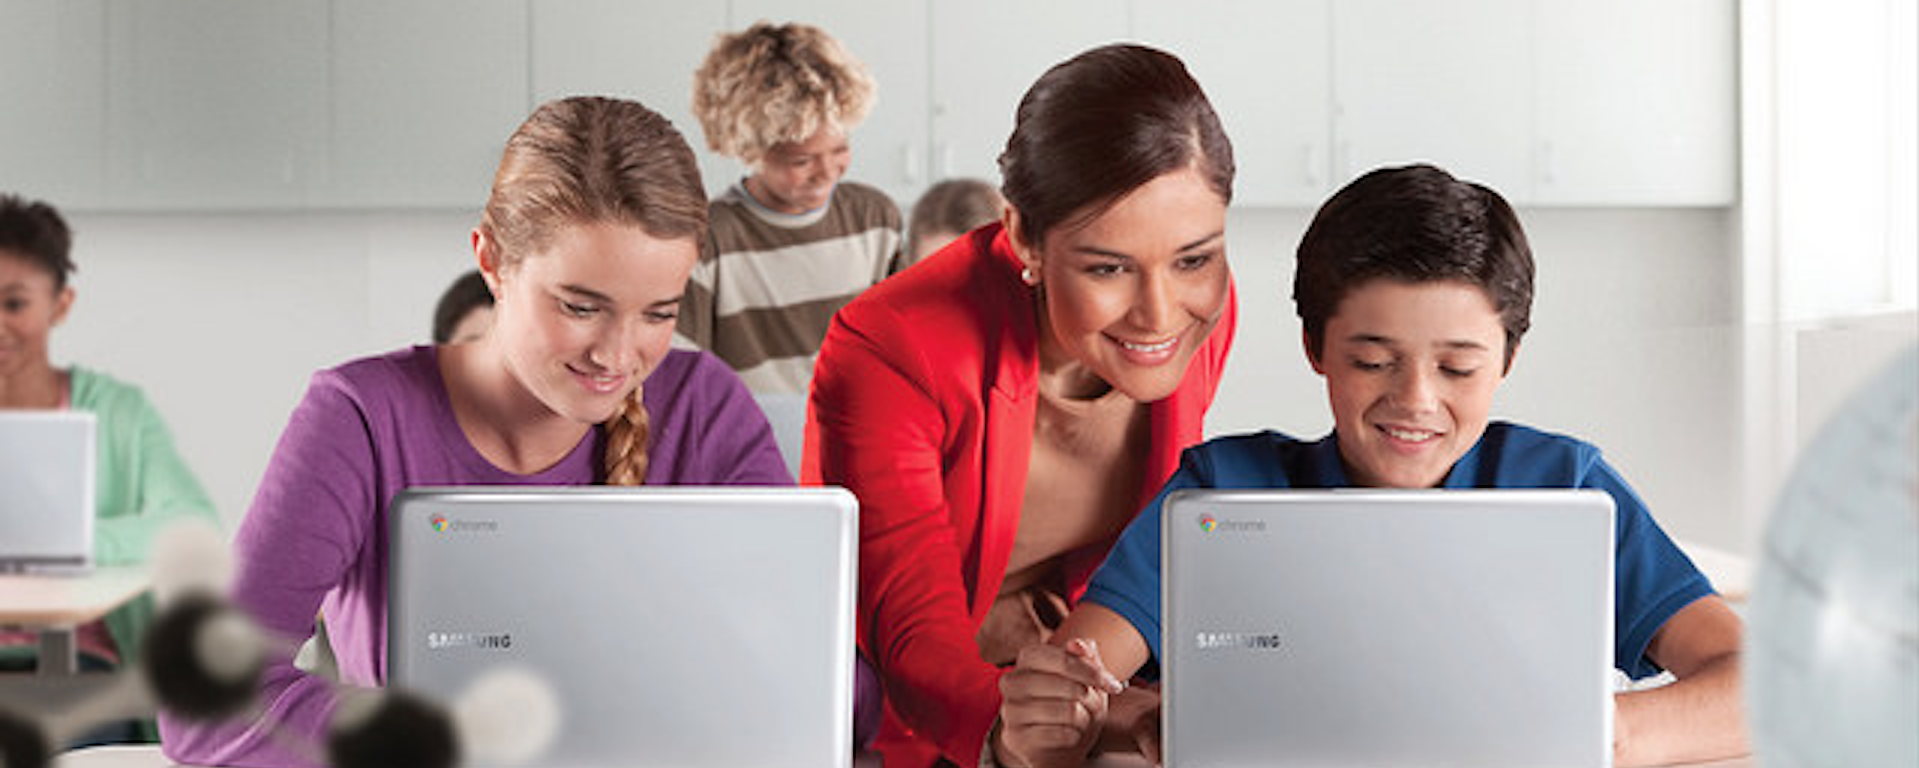 Who controls technologies more: teachers or students?